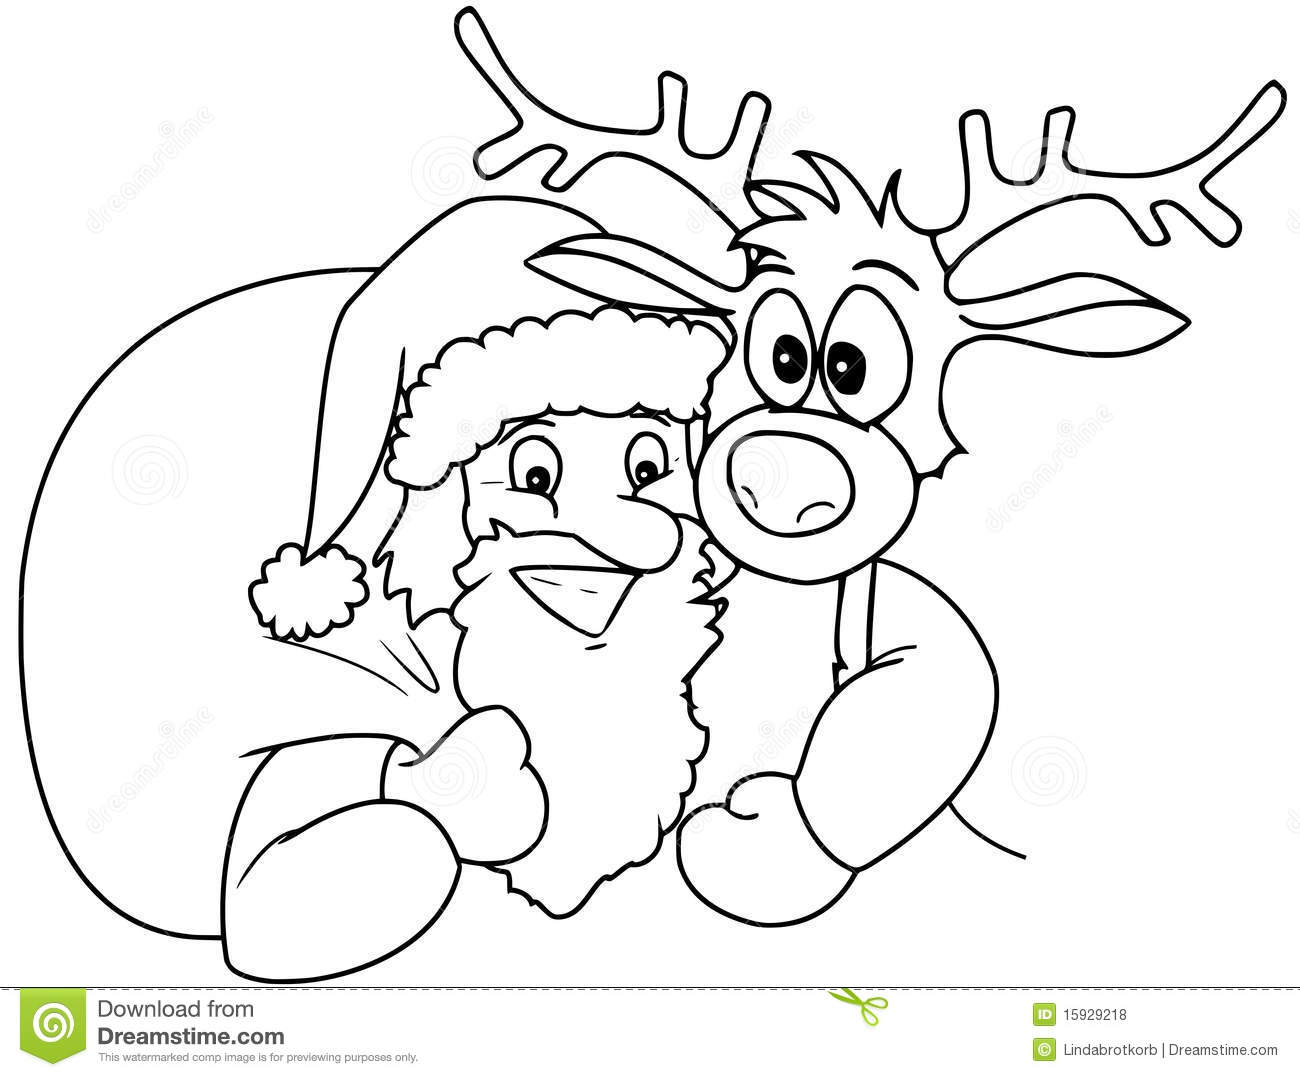 Abominable Snowman Rudolph Coloring Pages. rudolph s bumble svg ...